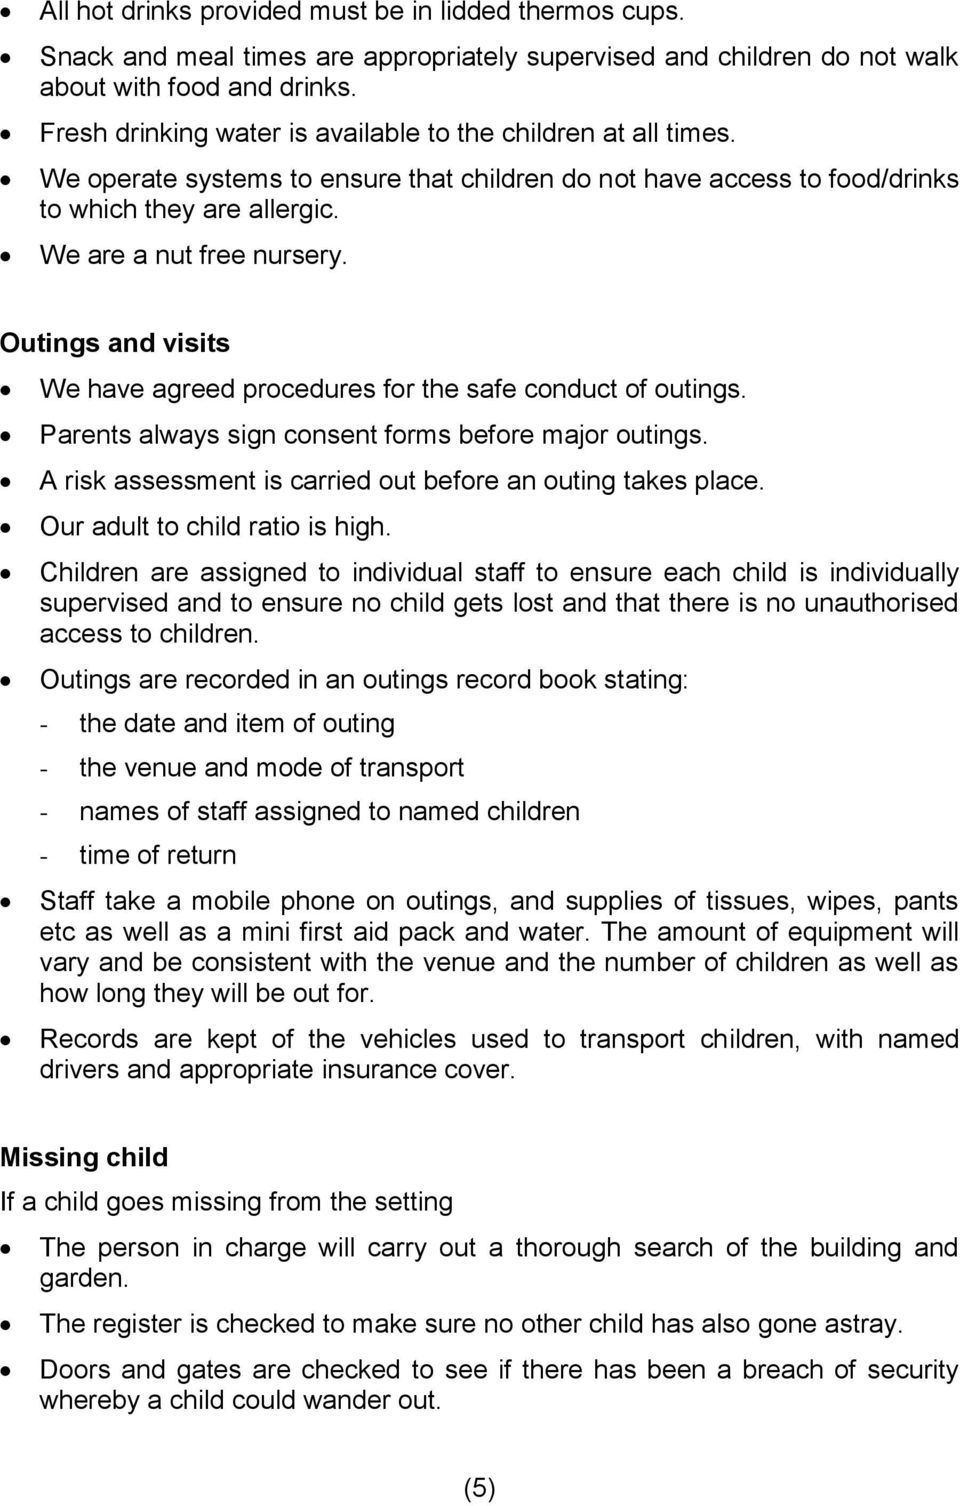 Outings and visits We have agreed procedures for the safe conduct of outings. Parents always sign consent forms before major outings. A risk assessment is carried out before an outing takes place.